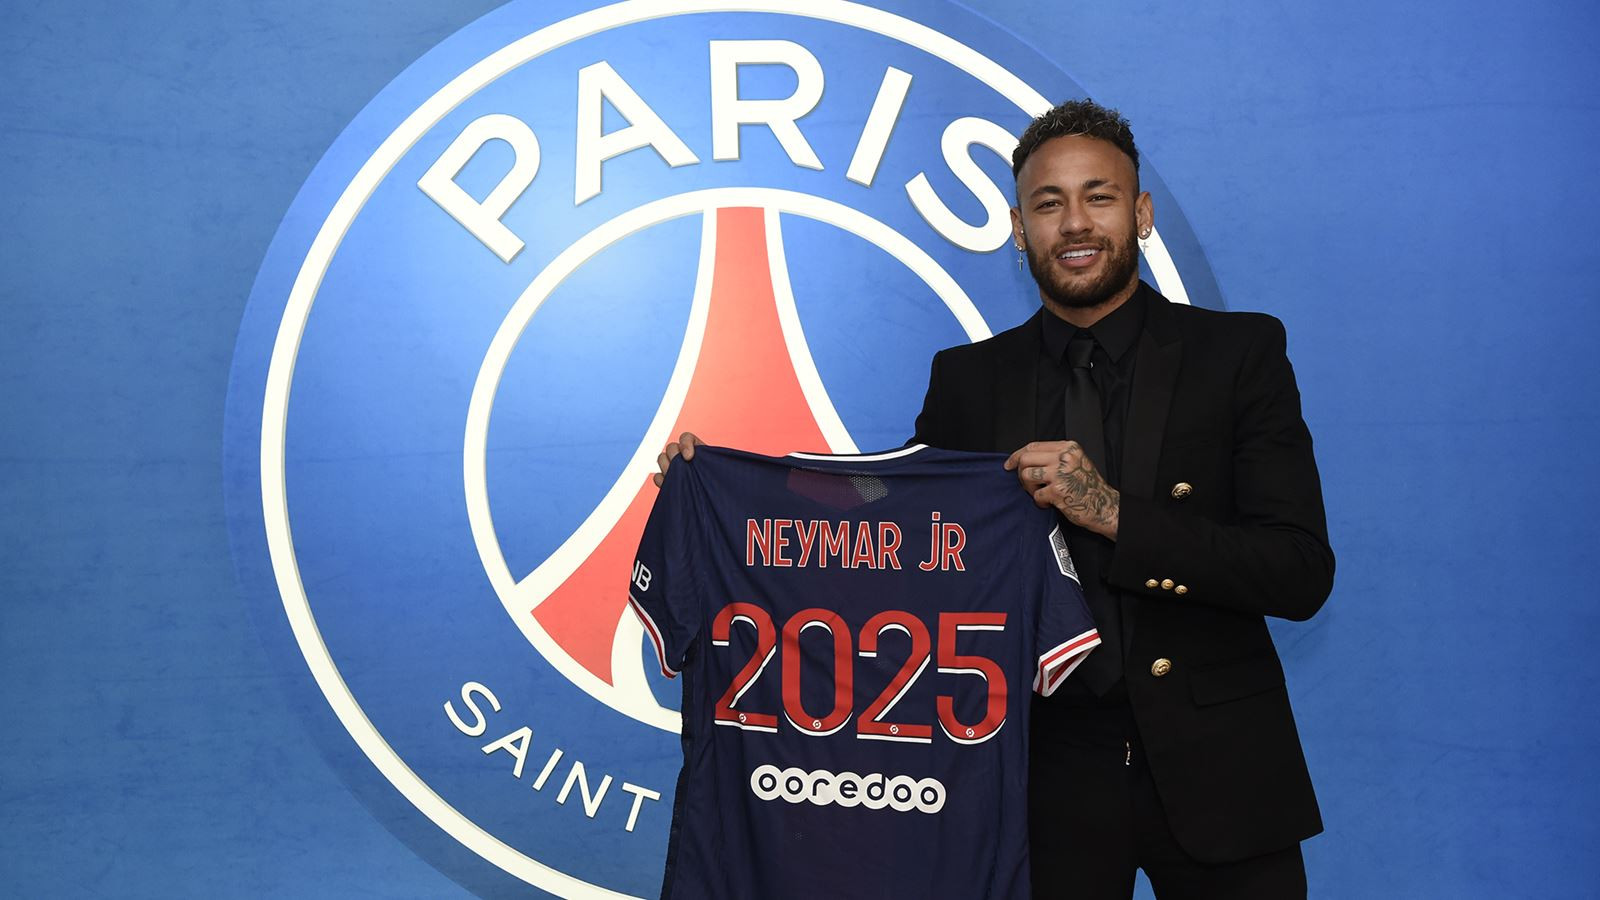 Neymar signs new contract extension with Paris Saint Germain until 2025